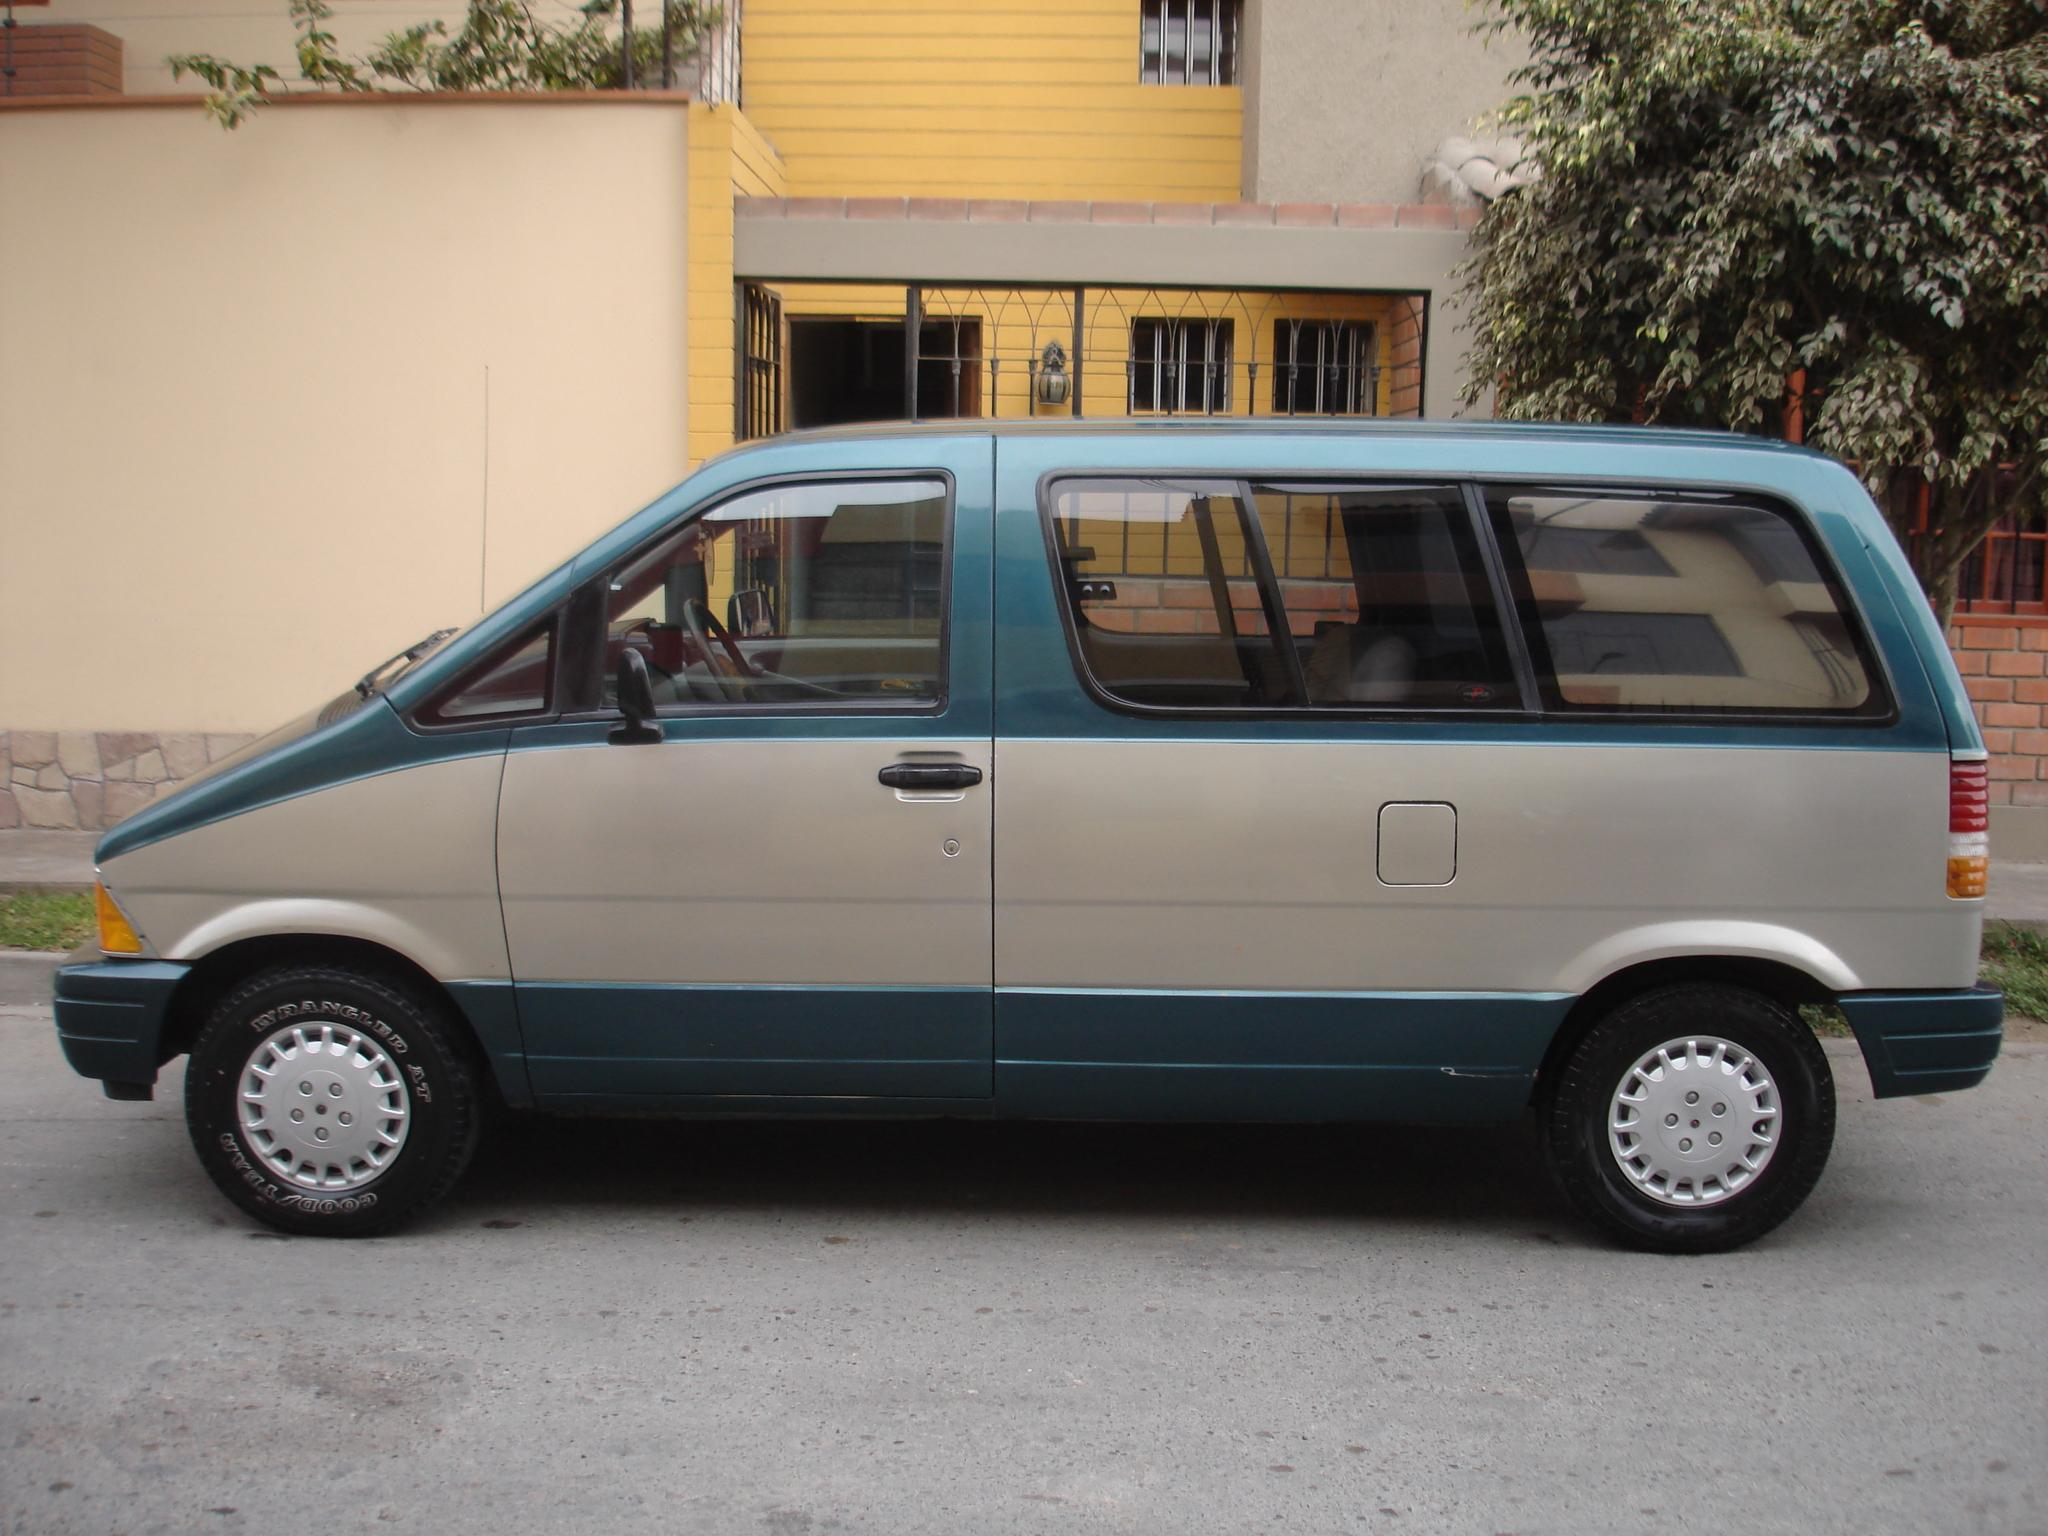 Ford Aerostar   pictures, information and specs - Auto-Database.com